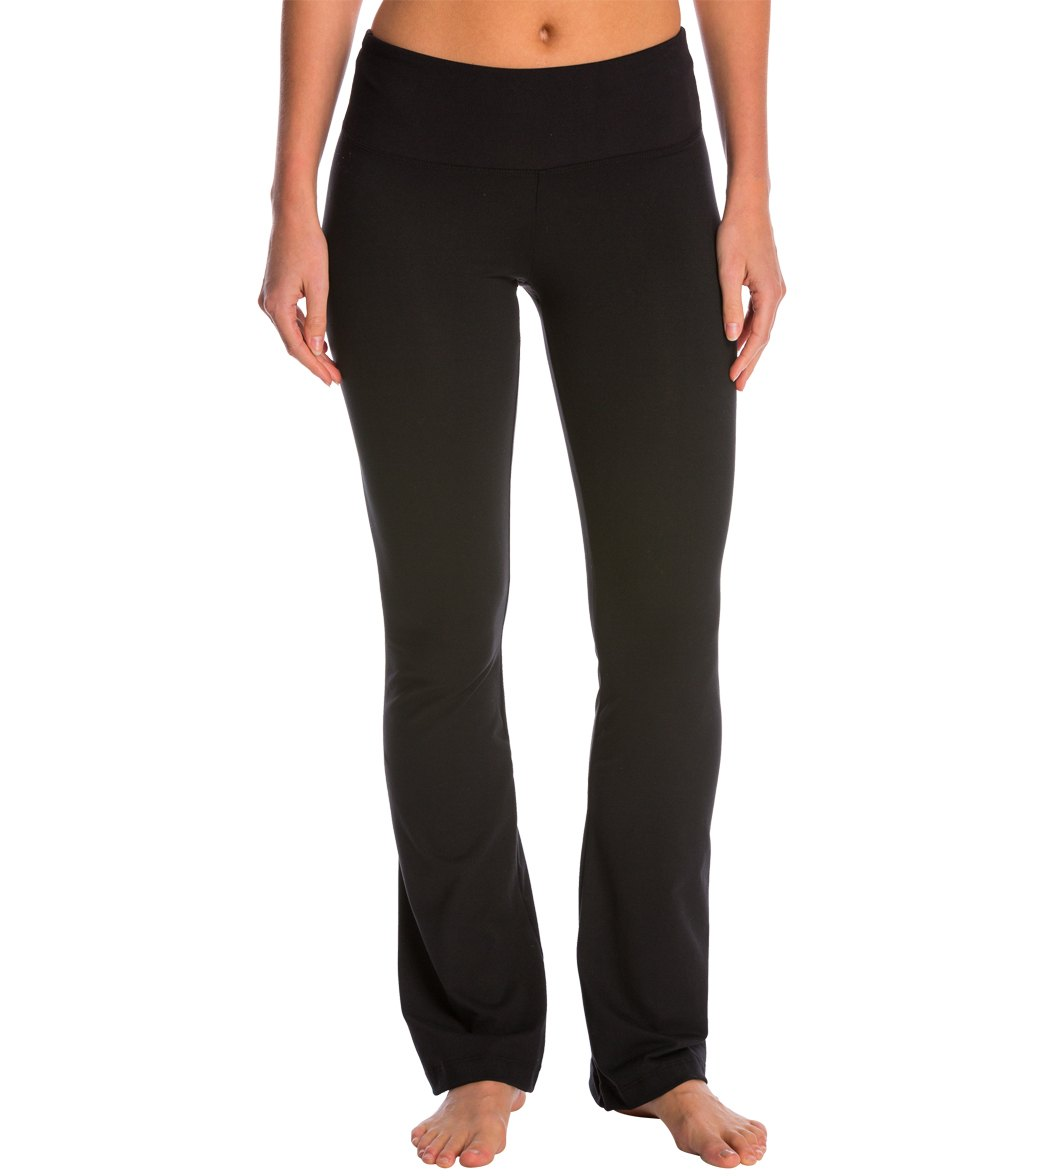 f17affac10acdf Balance Collection Sanded Dry Wik Yoga Pants at YogaOutlet.com